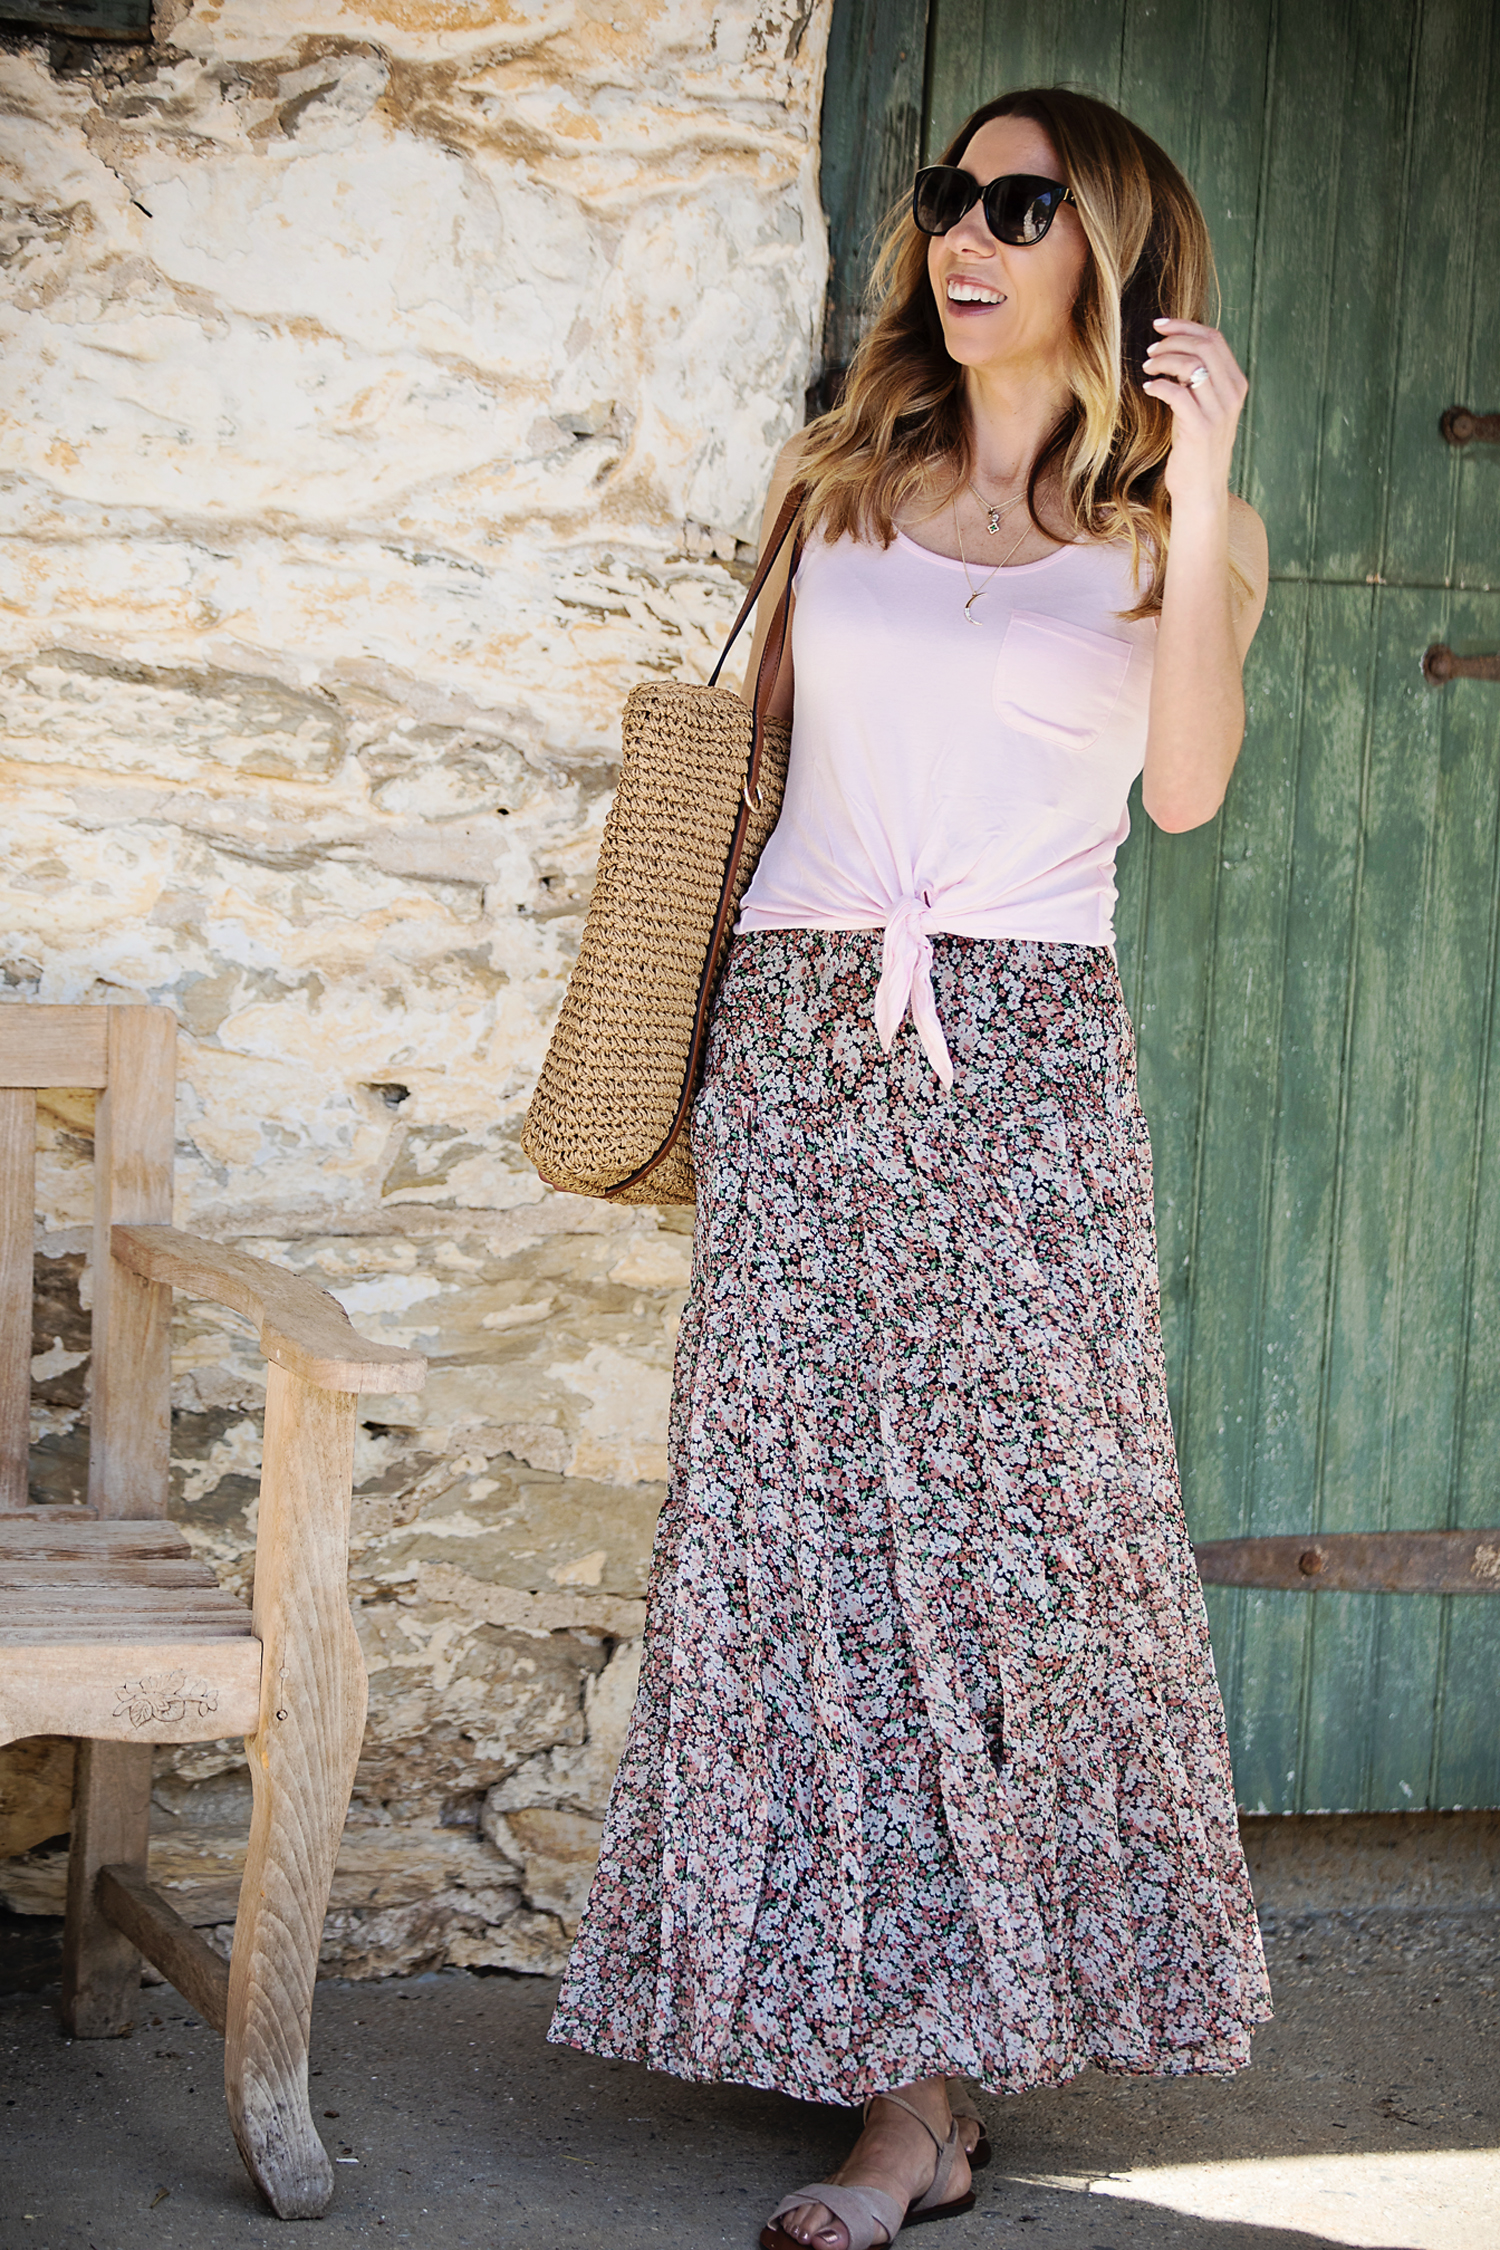 The motherchic wearing floral maxi skirt from Macy's